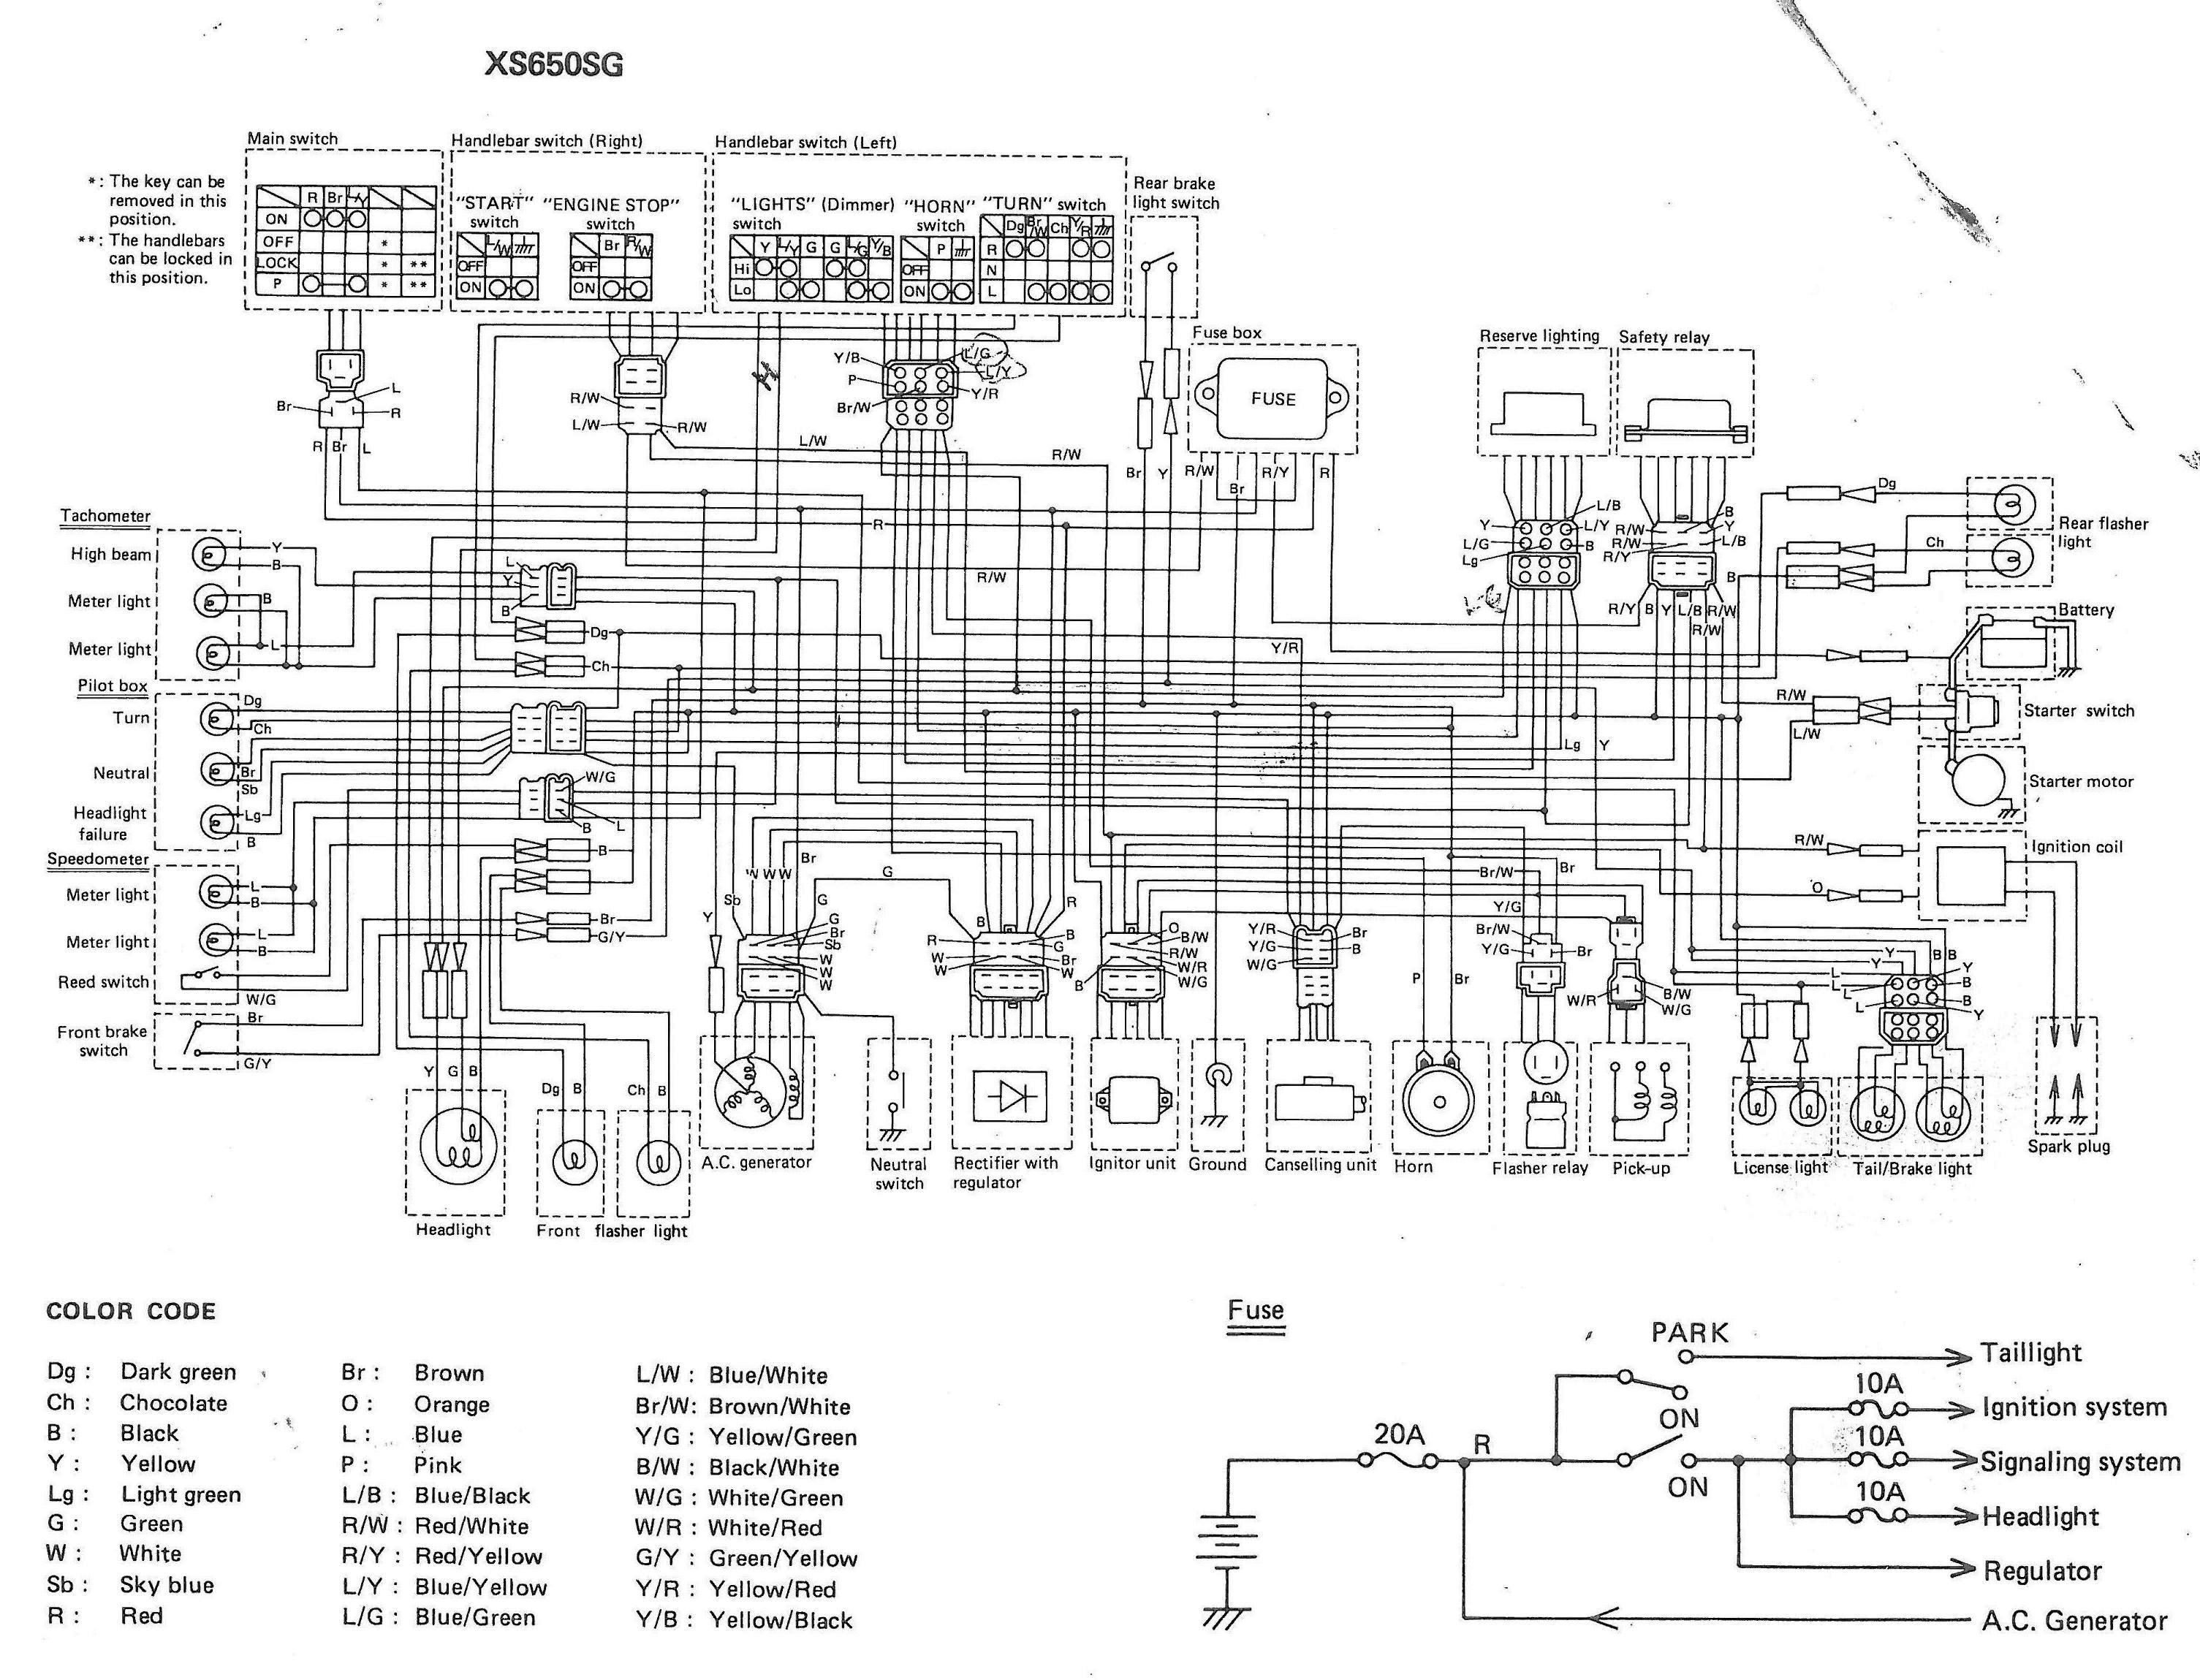 wiring diagram yamaha xse wire center u2022 rh abetter pw